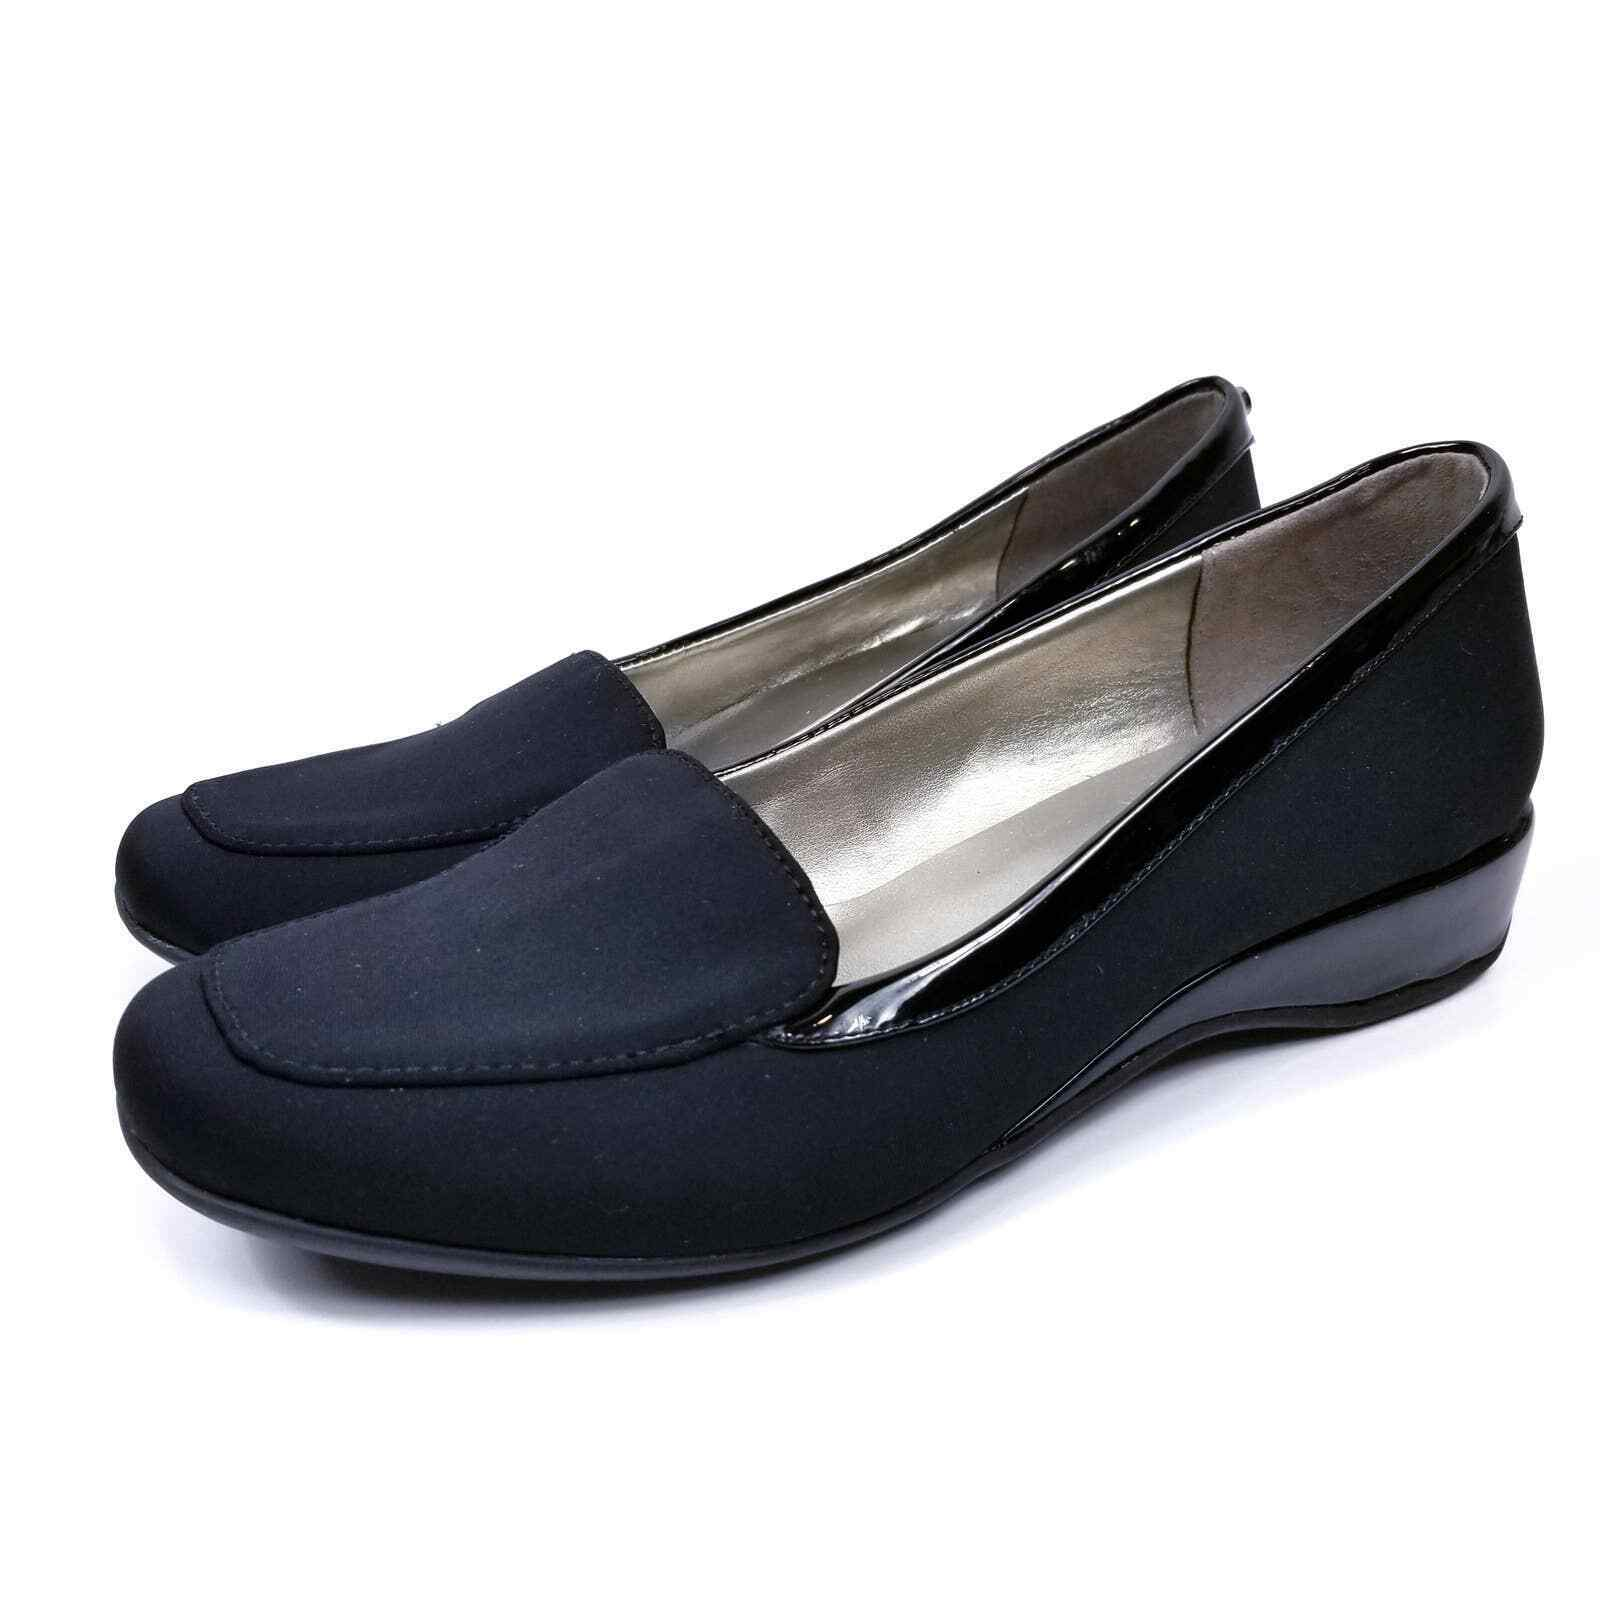 Bandolino Black Lilas Low Wedge Loafer Size 7